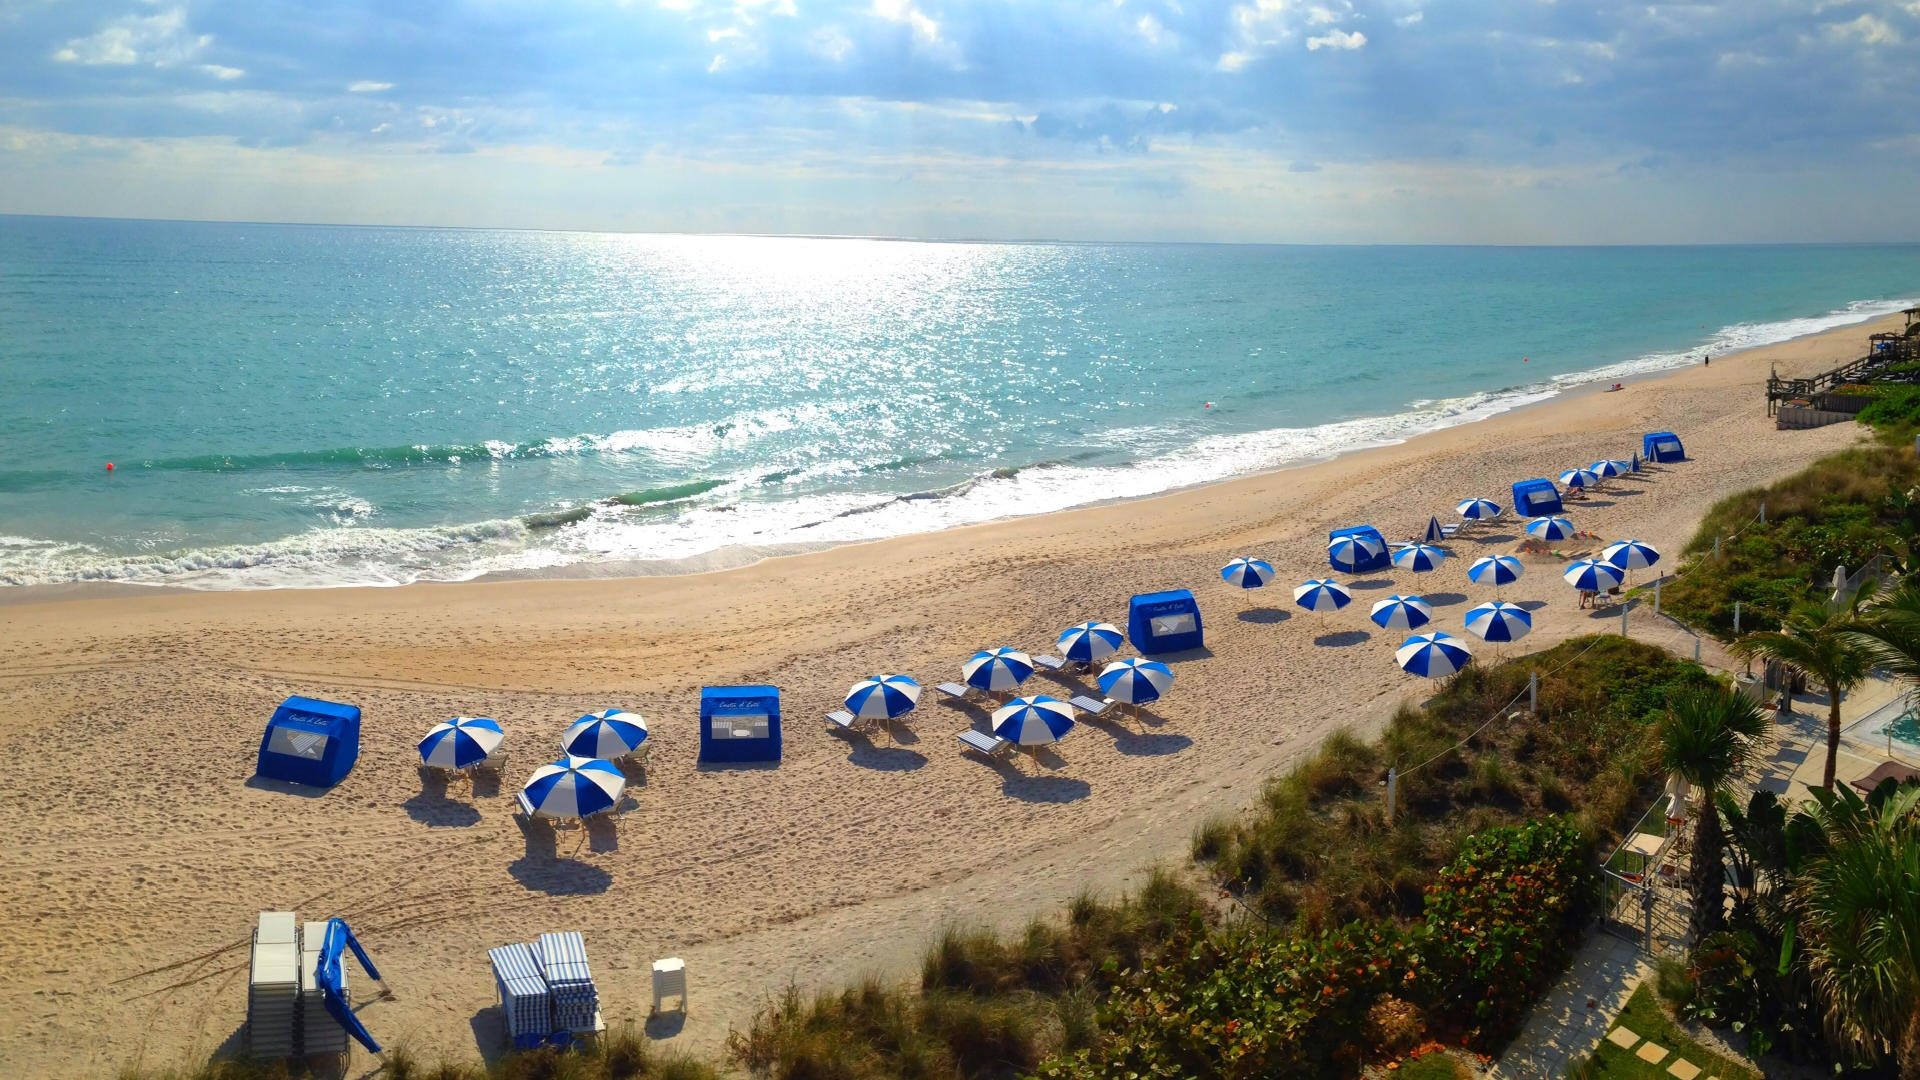 vero beach with Costa umbrellas